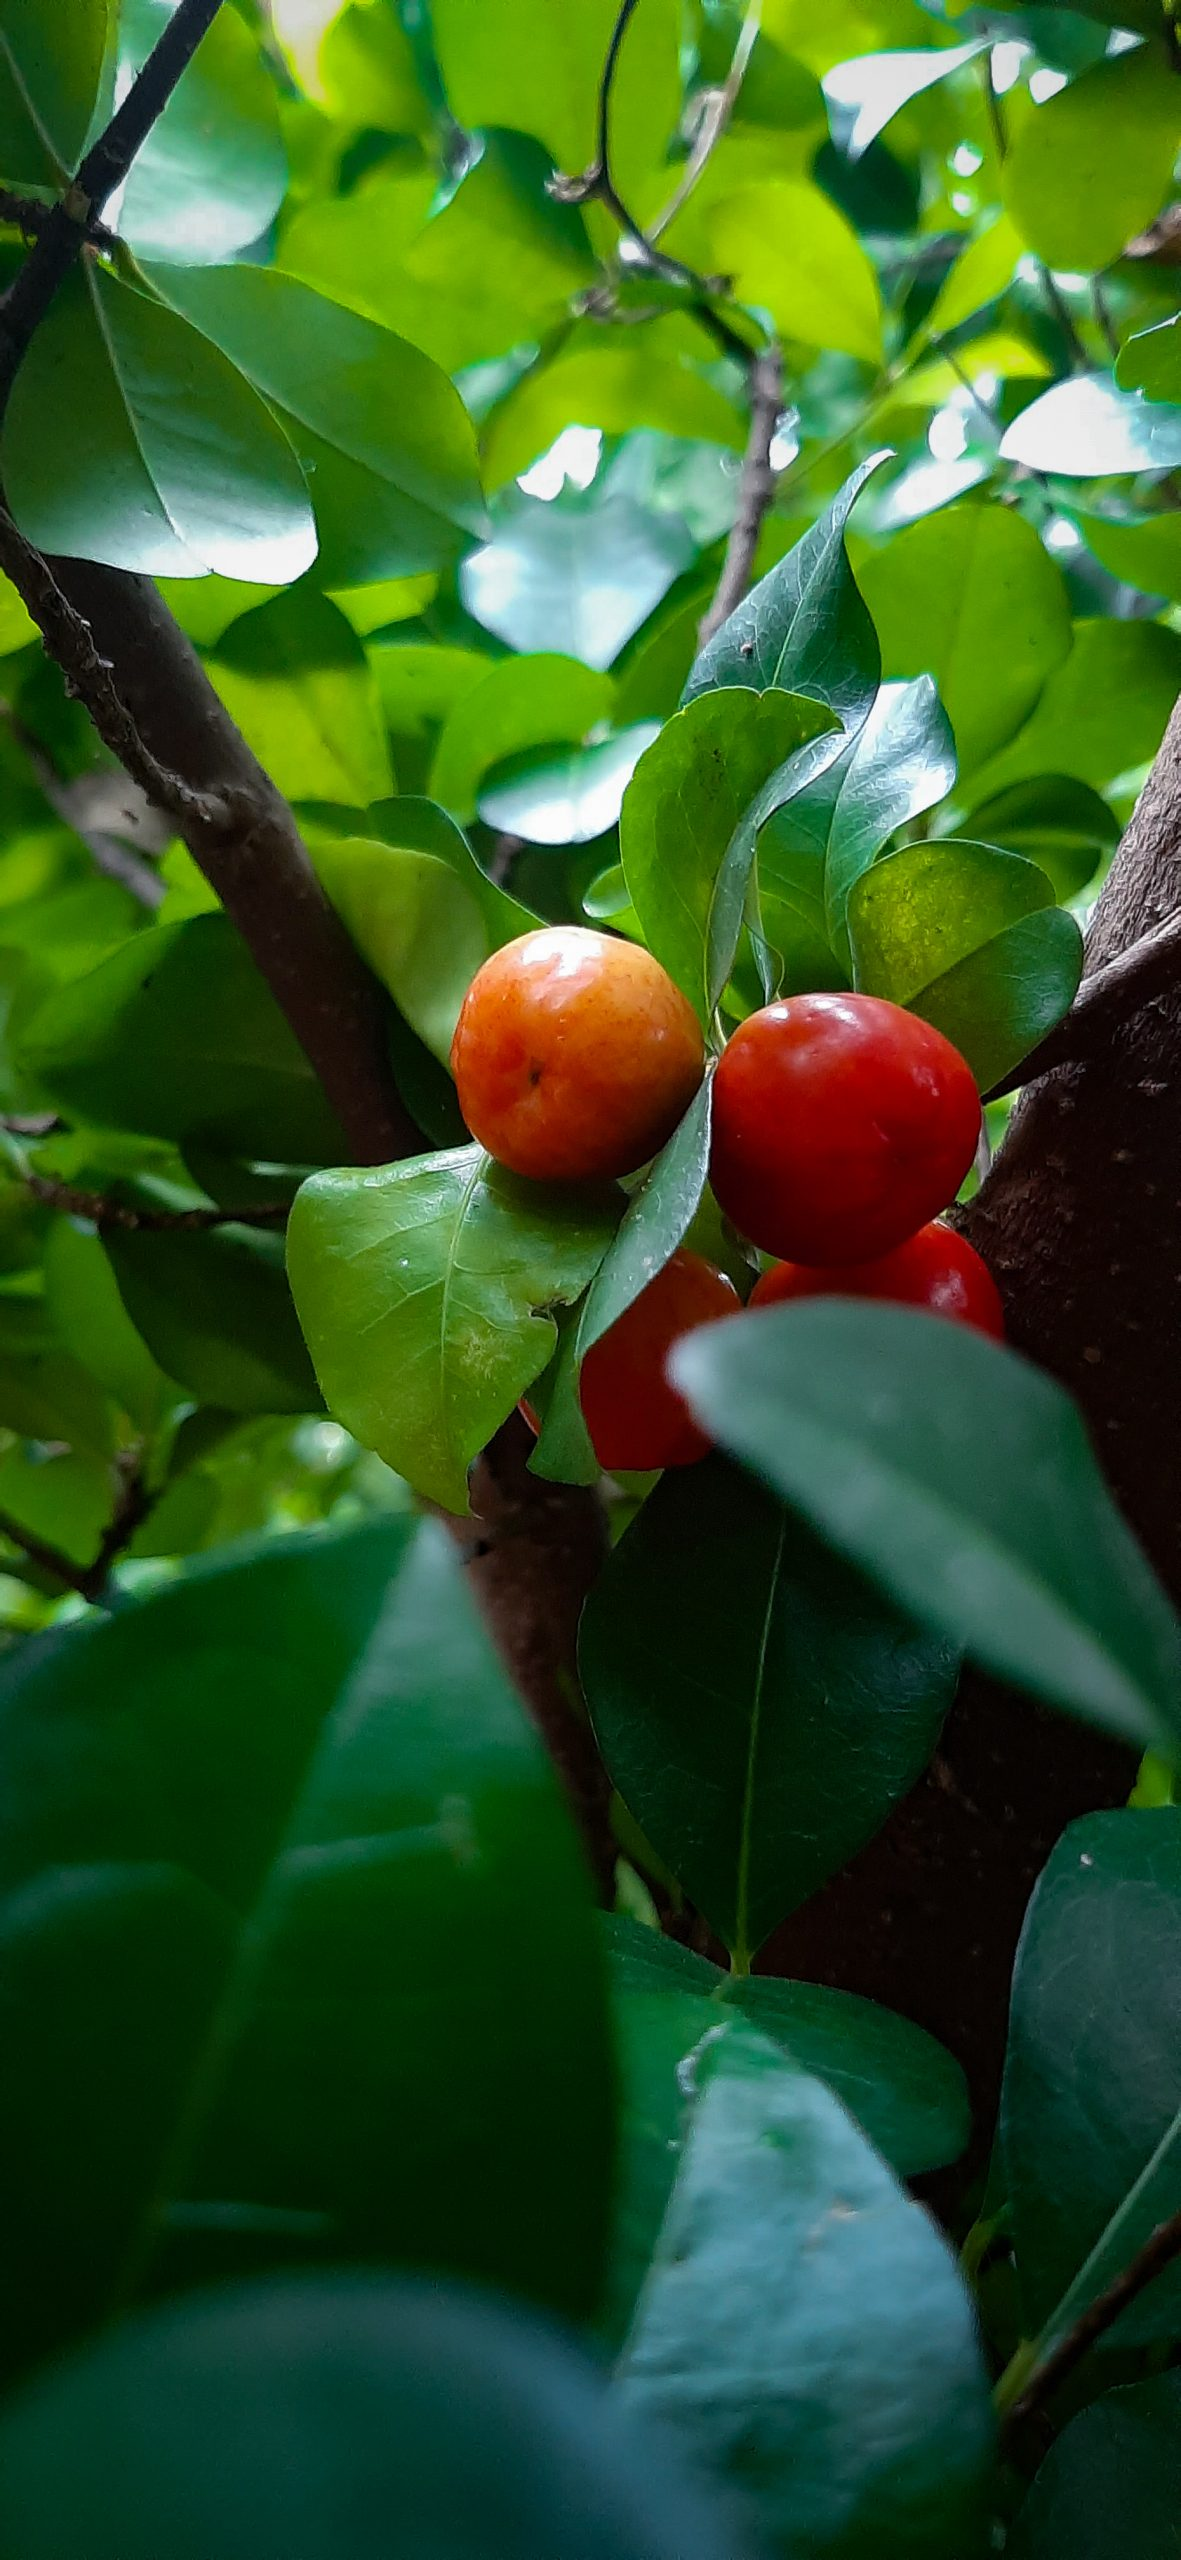 Red cherry on its plant